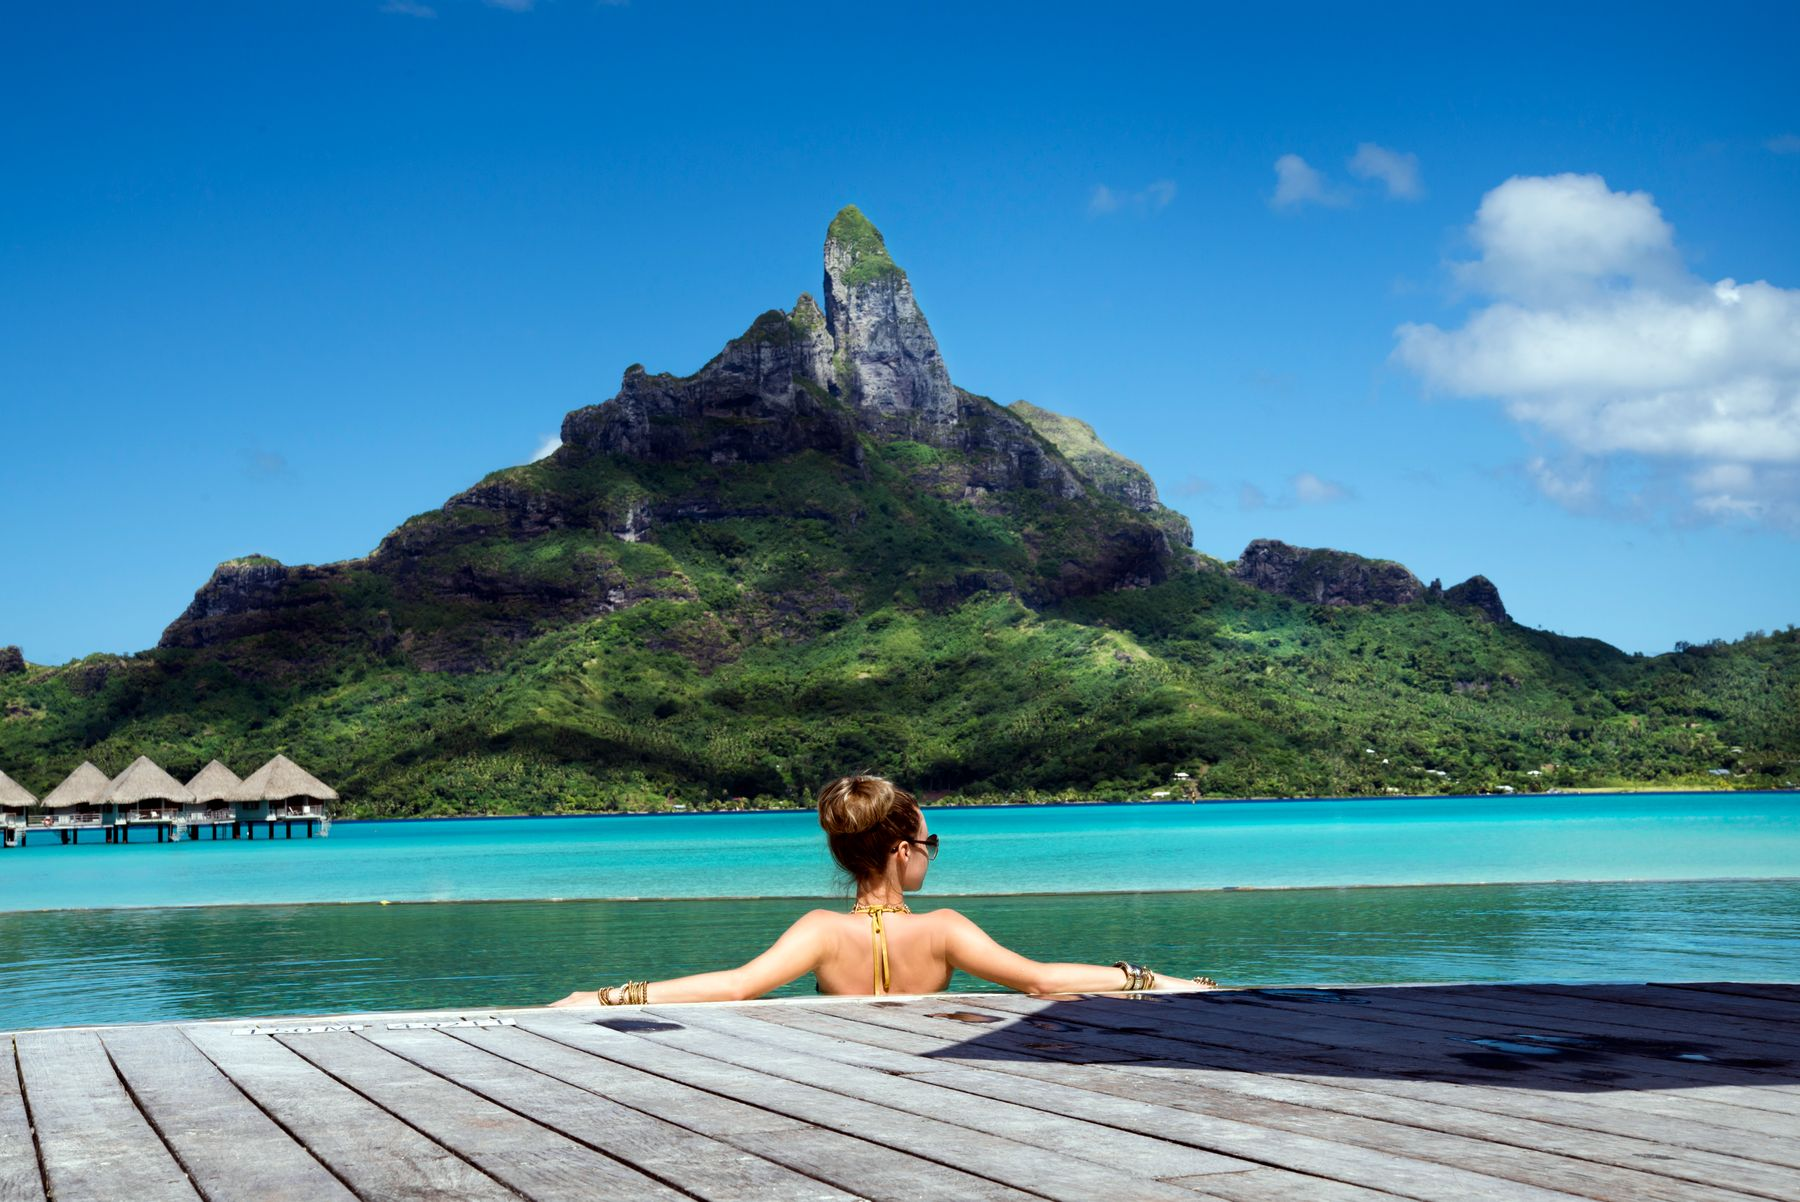 person resting  by the pool in Tahiti with the view of a mountain. Tahiti is the ultimate dream vacation destination